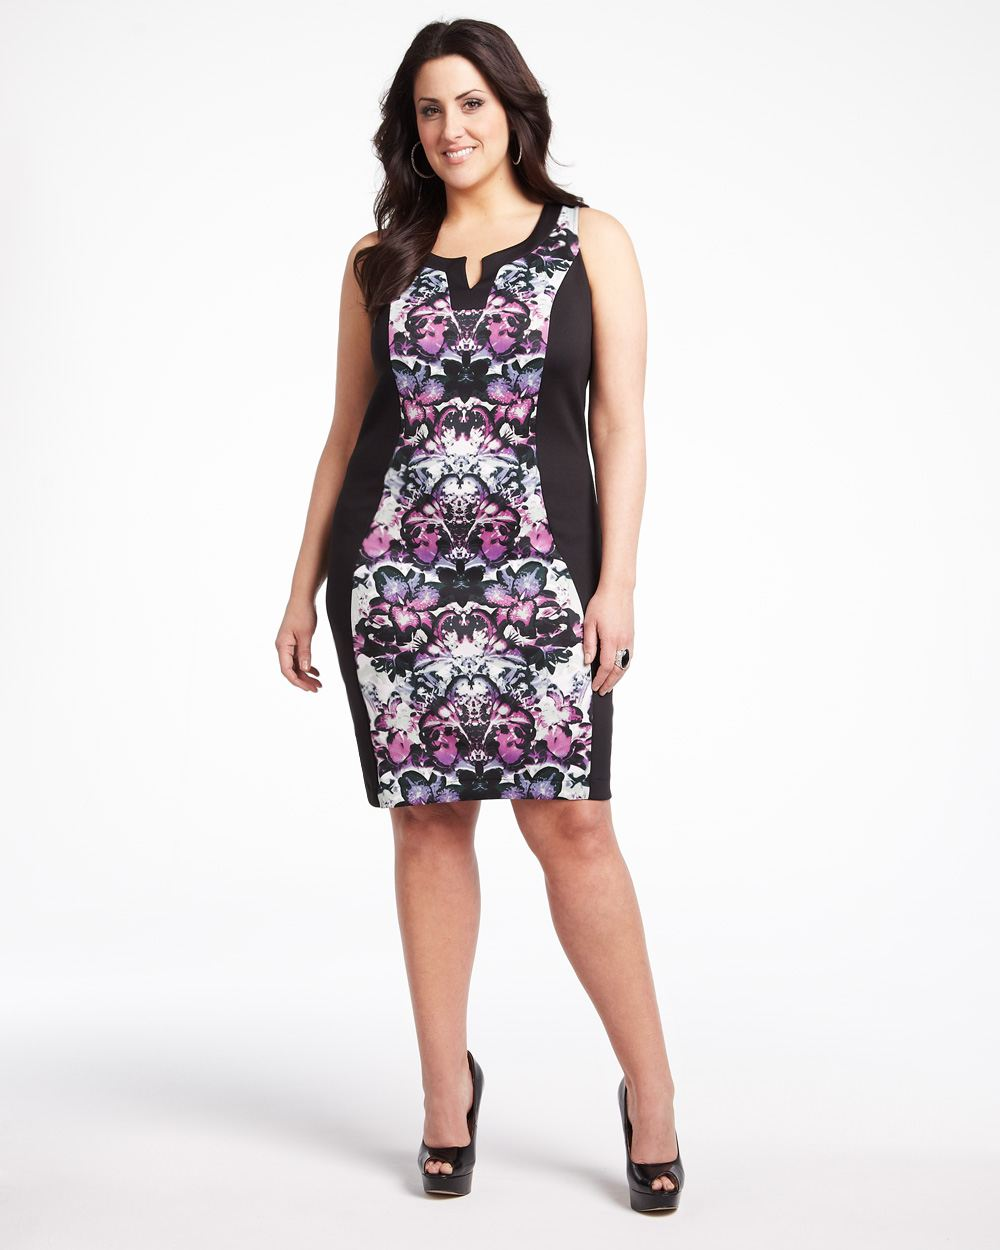 Women's Plus-Size Clothing: Free Shipping on orders over $45 at erlinelomantkgs831.ga - Your Online Women's Plus-Size Clothing Store! Get 5% in rewards with Club O!